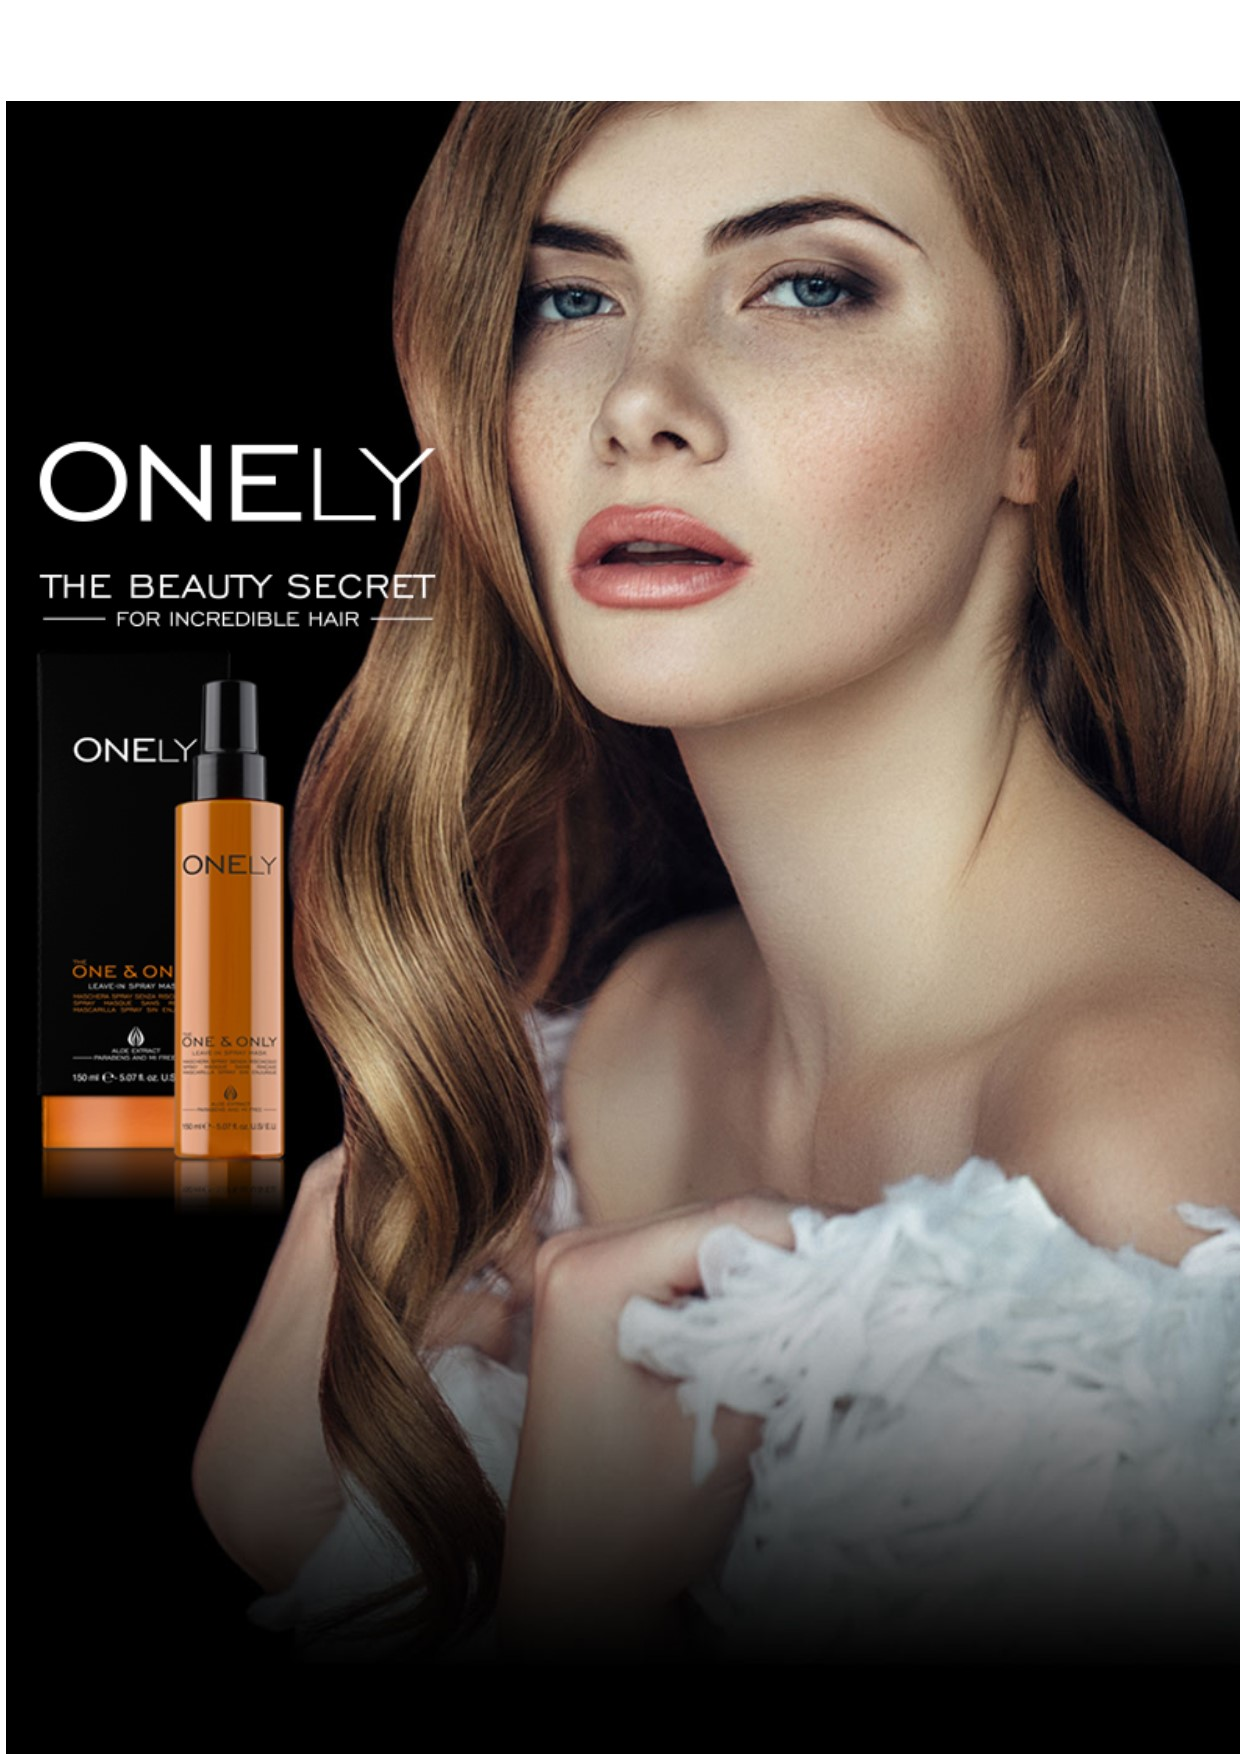 ONELY hair products